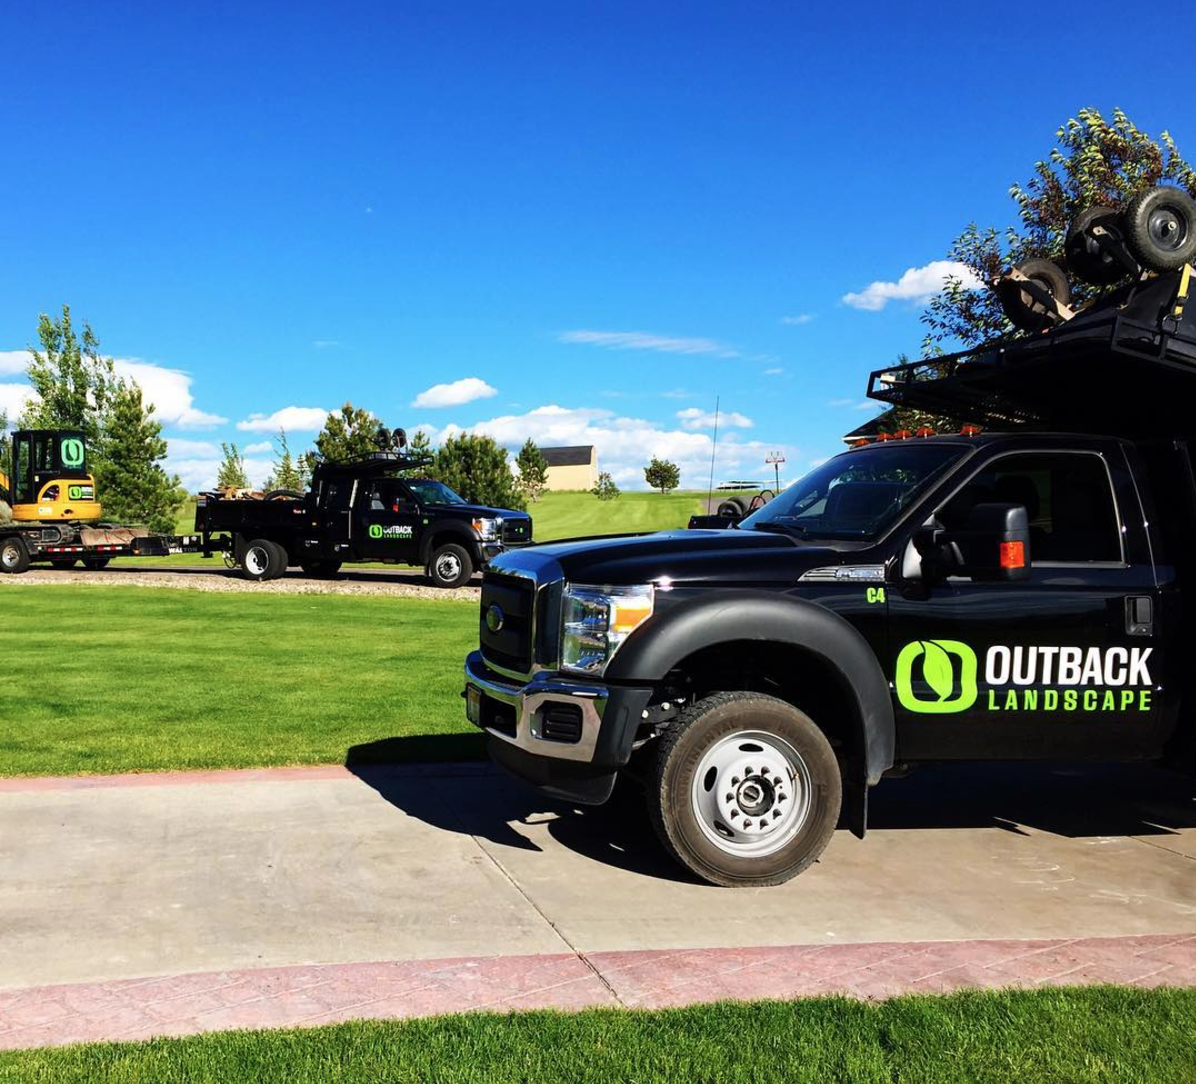 - Idaho Falls Landscaper Comparison: Seasons West Vs All American Yards